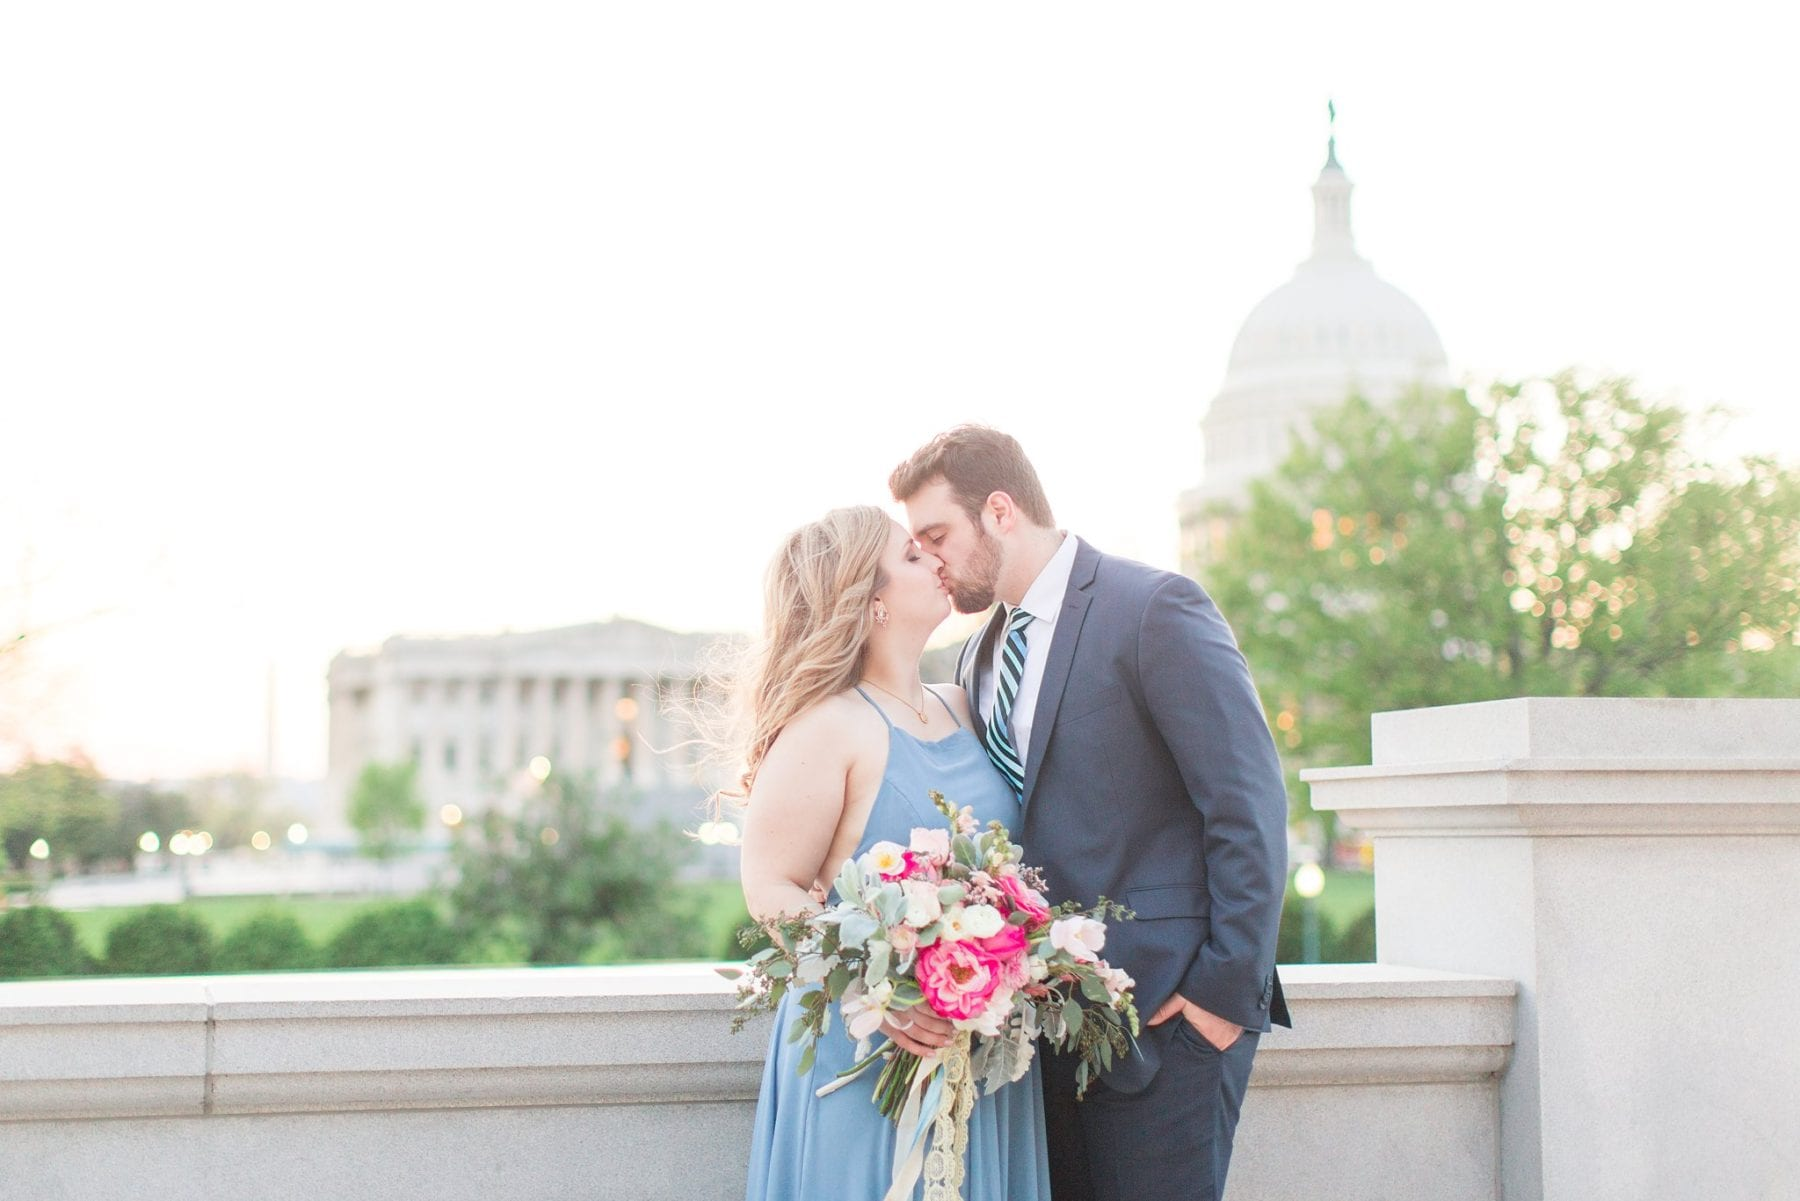 Capitol Hill Engagement Photos Kelly & Zach Washington DC Wedding Photographer Megan Kelsey Photography-362.jpg